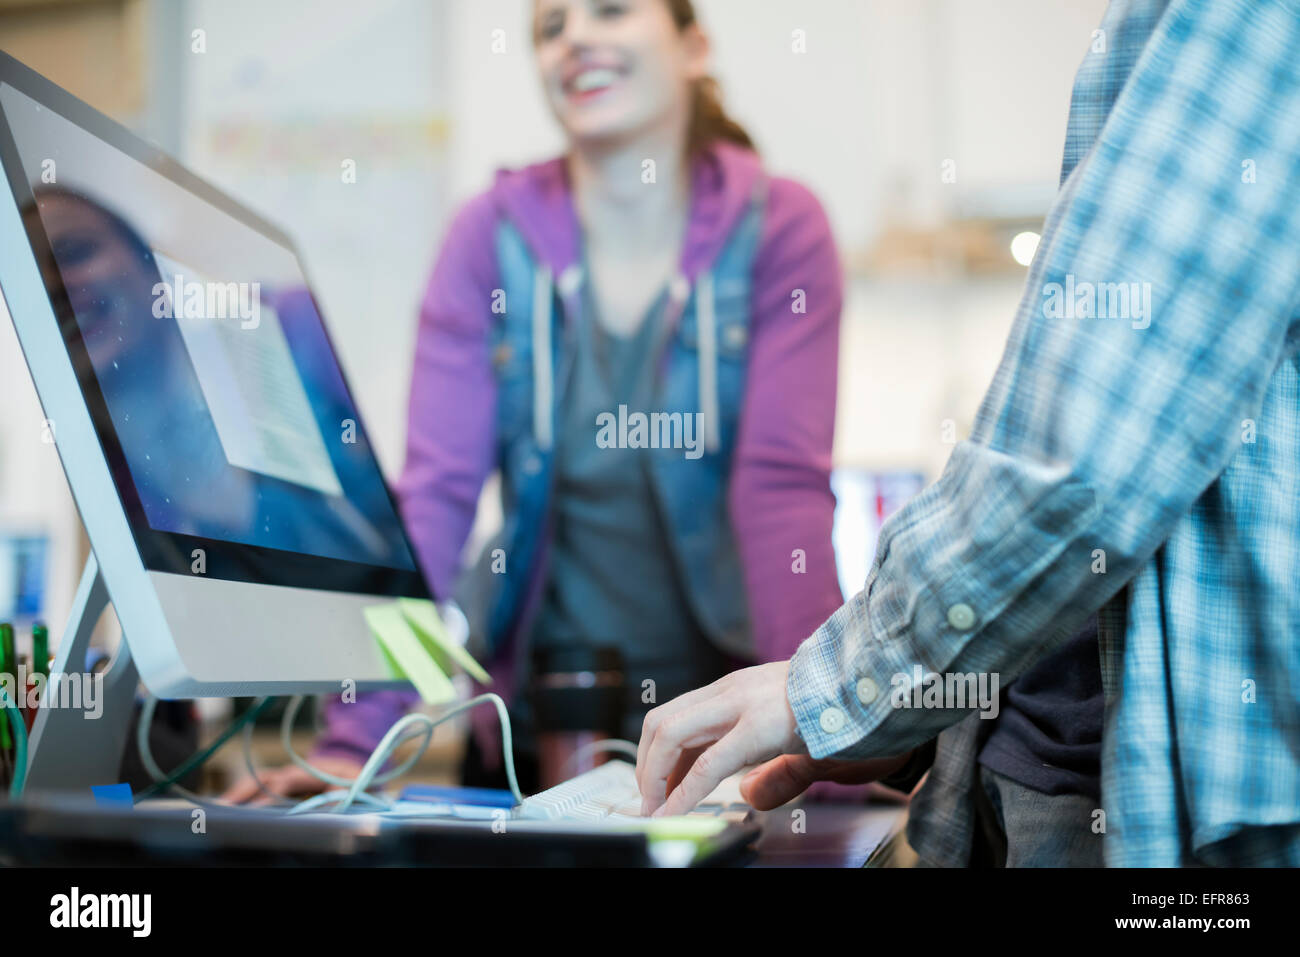 Two people at a computer repair shop, one typing and checking a monitor display. - Stock Image